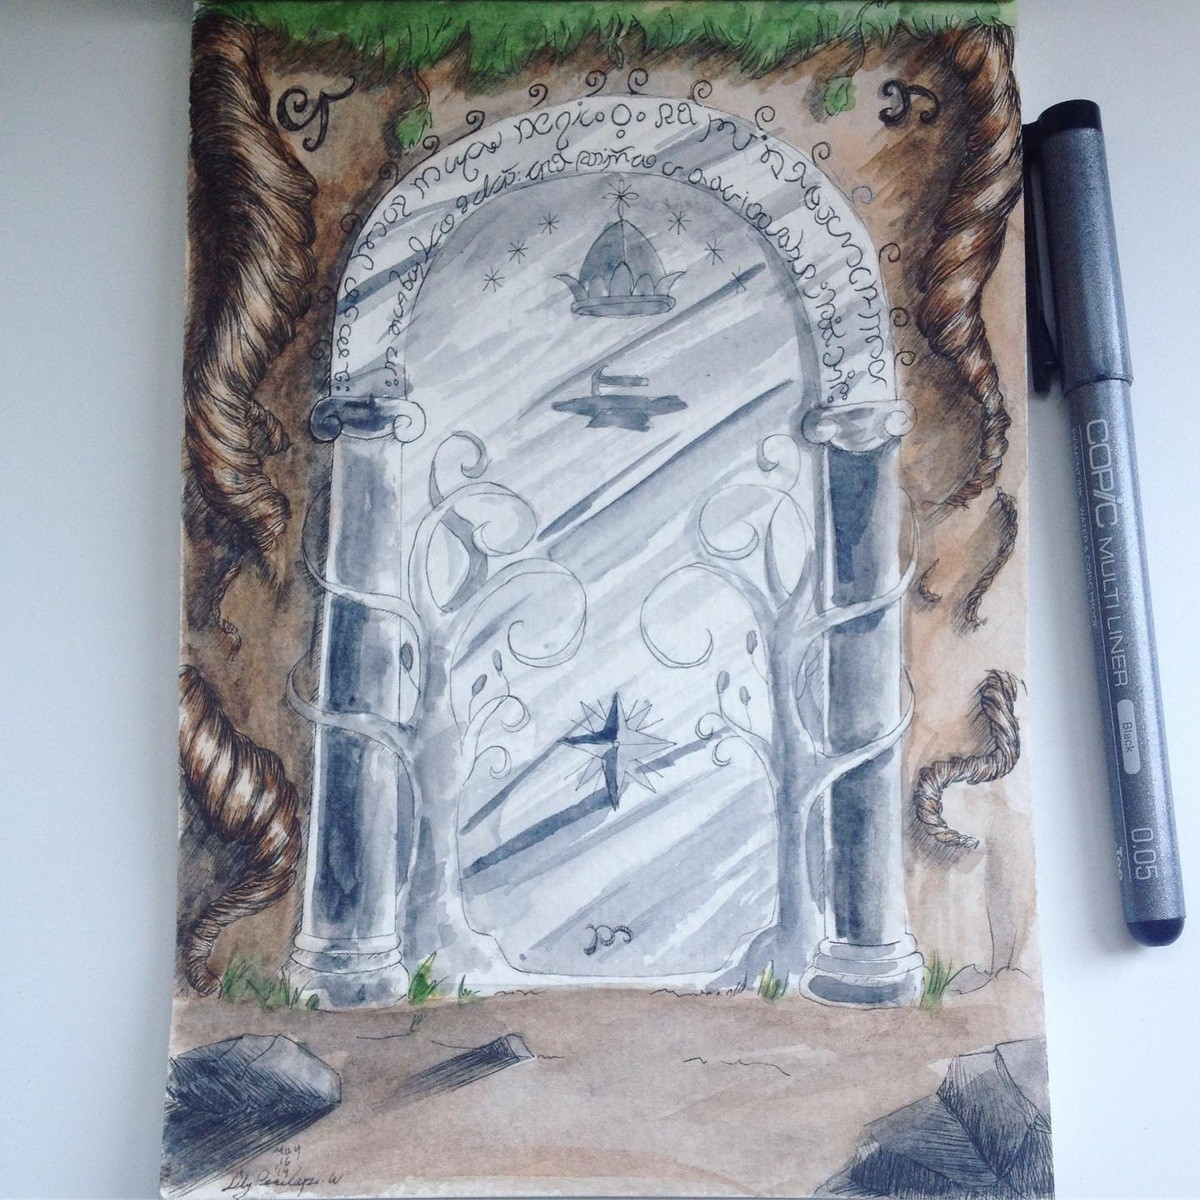 Lord Of the Rings door. Some LOTR fan art that I really enjoyed making. join list: WatercolorAndOrInk (6 subs)Mention History join list:.